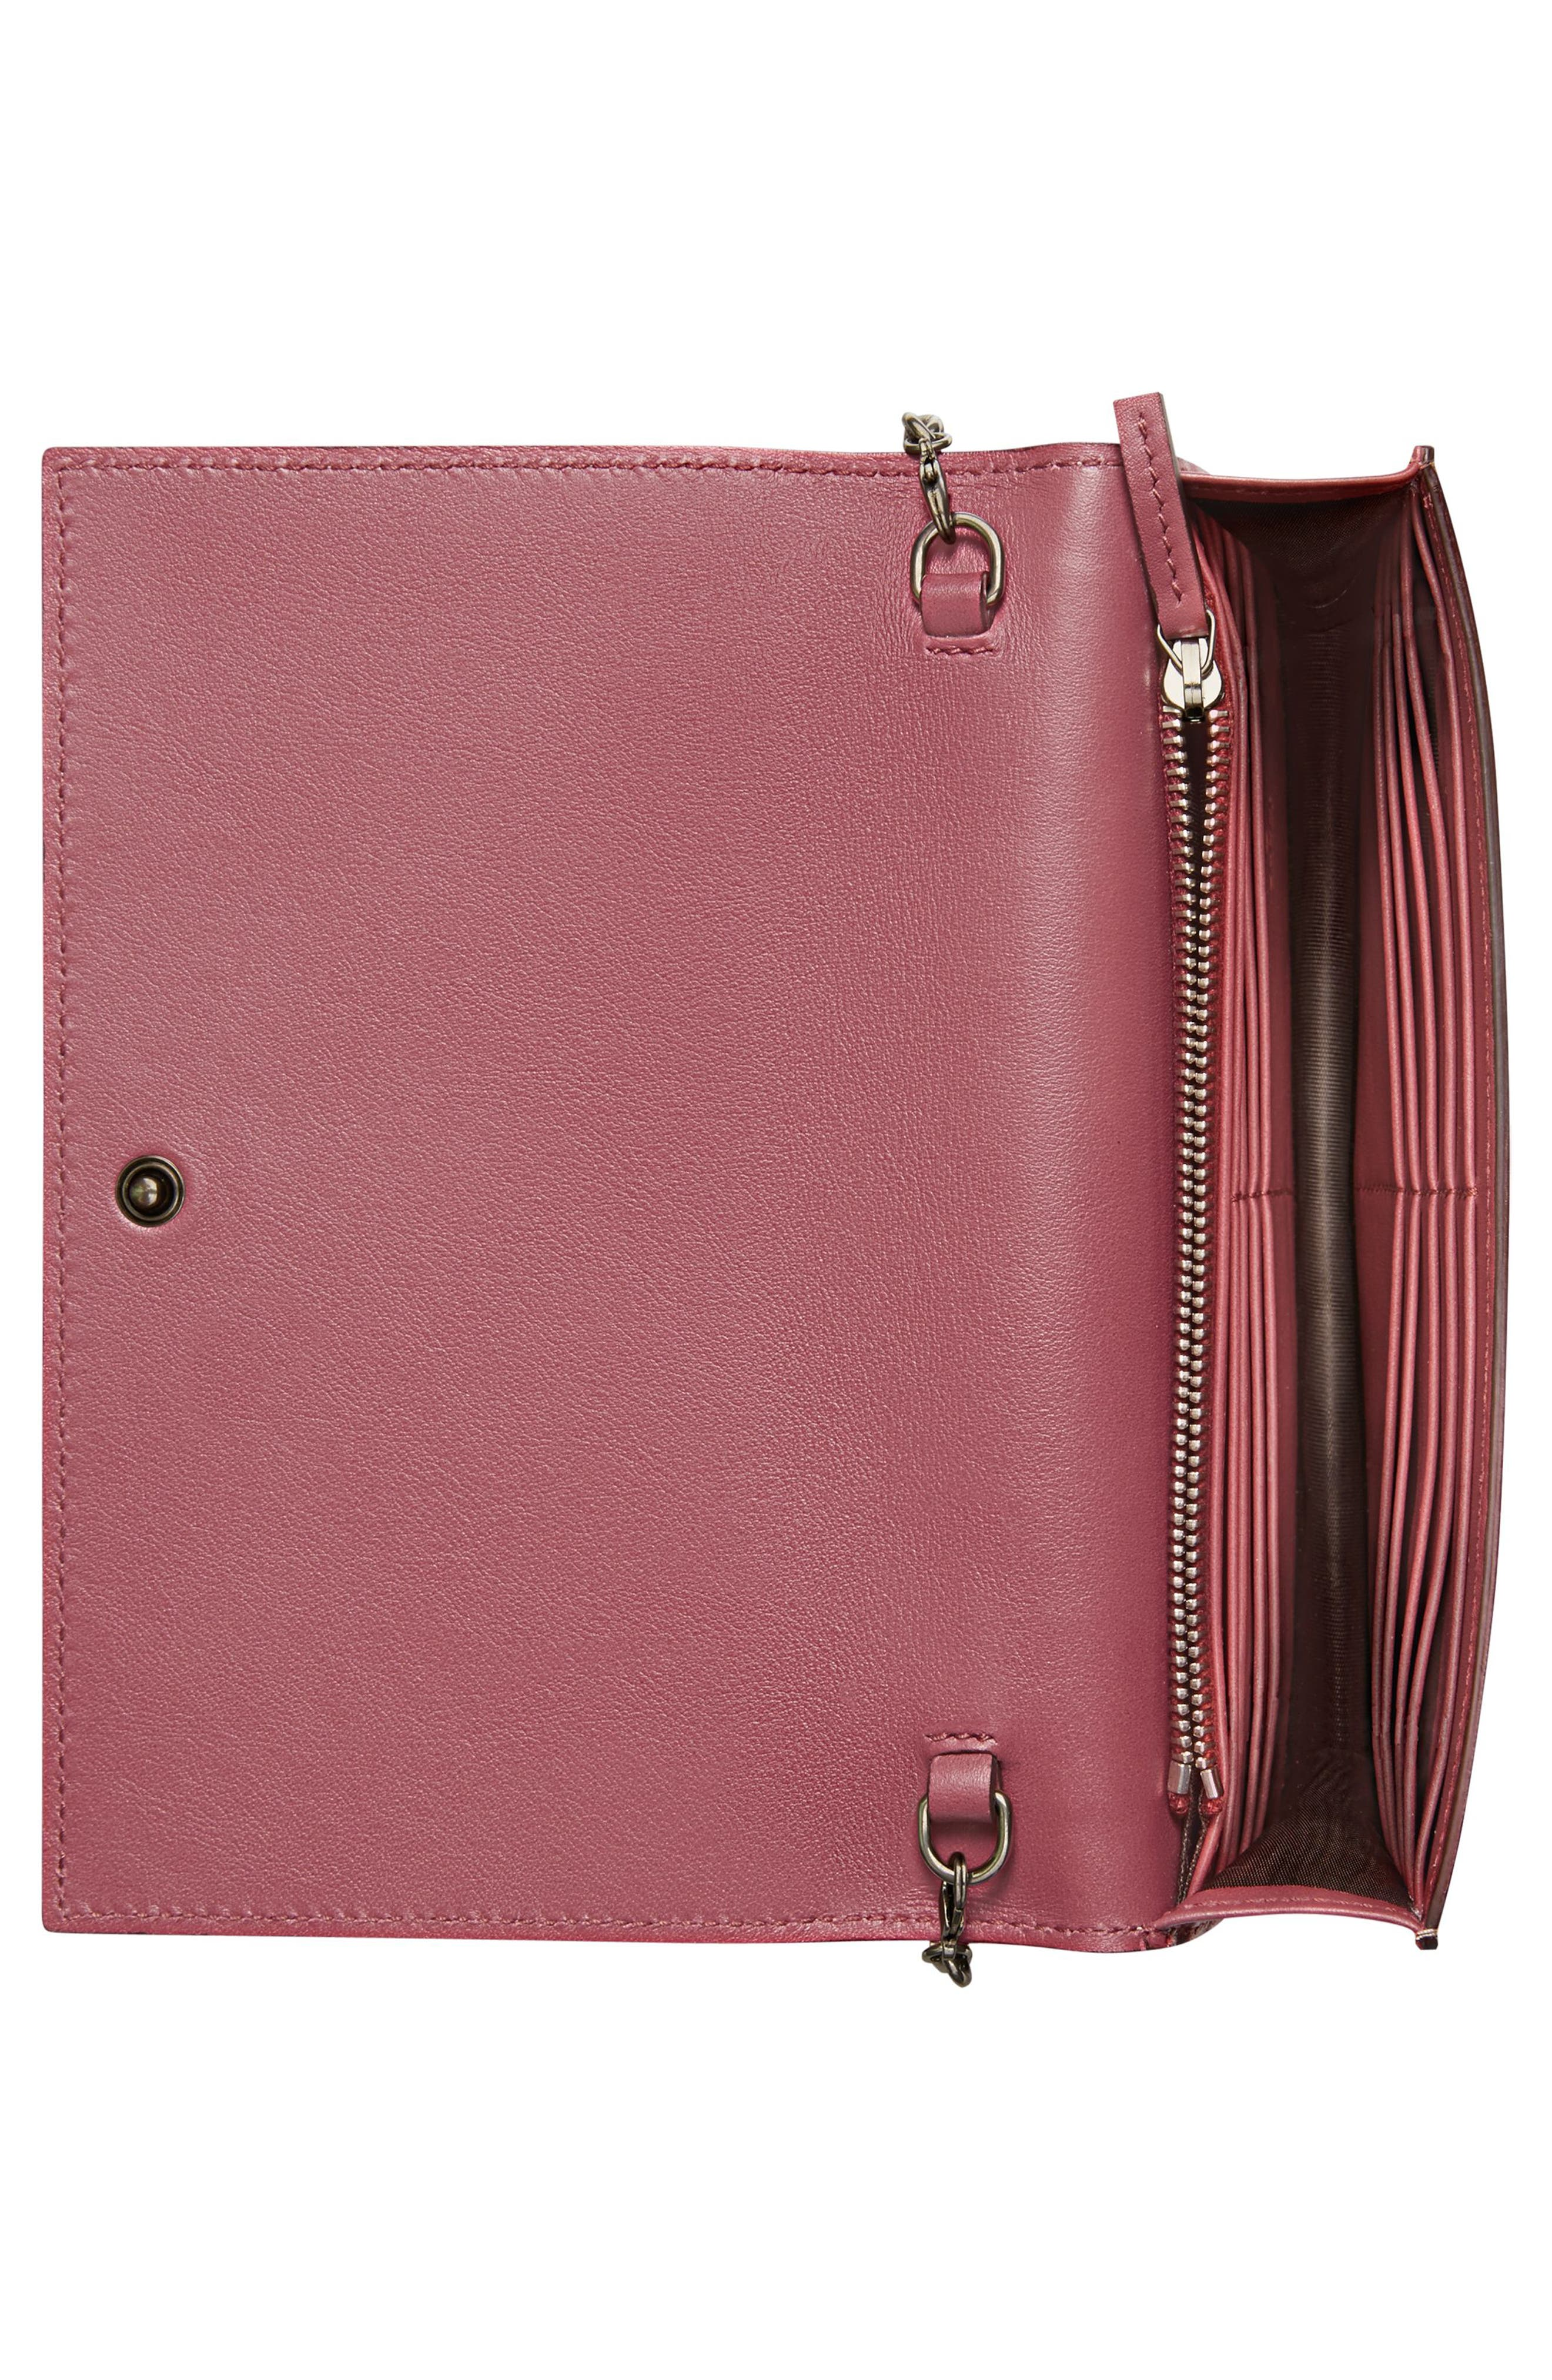 GG Blooms Supreme Canvas Wallet on a Chain,                             Alternate thumbnail 2, color,                             Beige Ebony Multi/Dry Rose